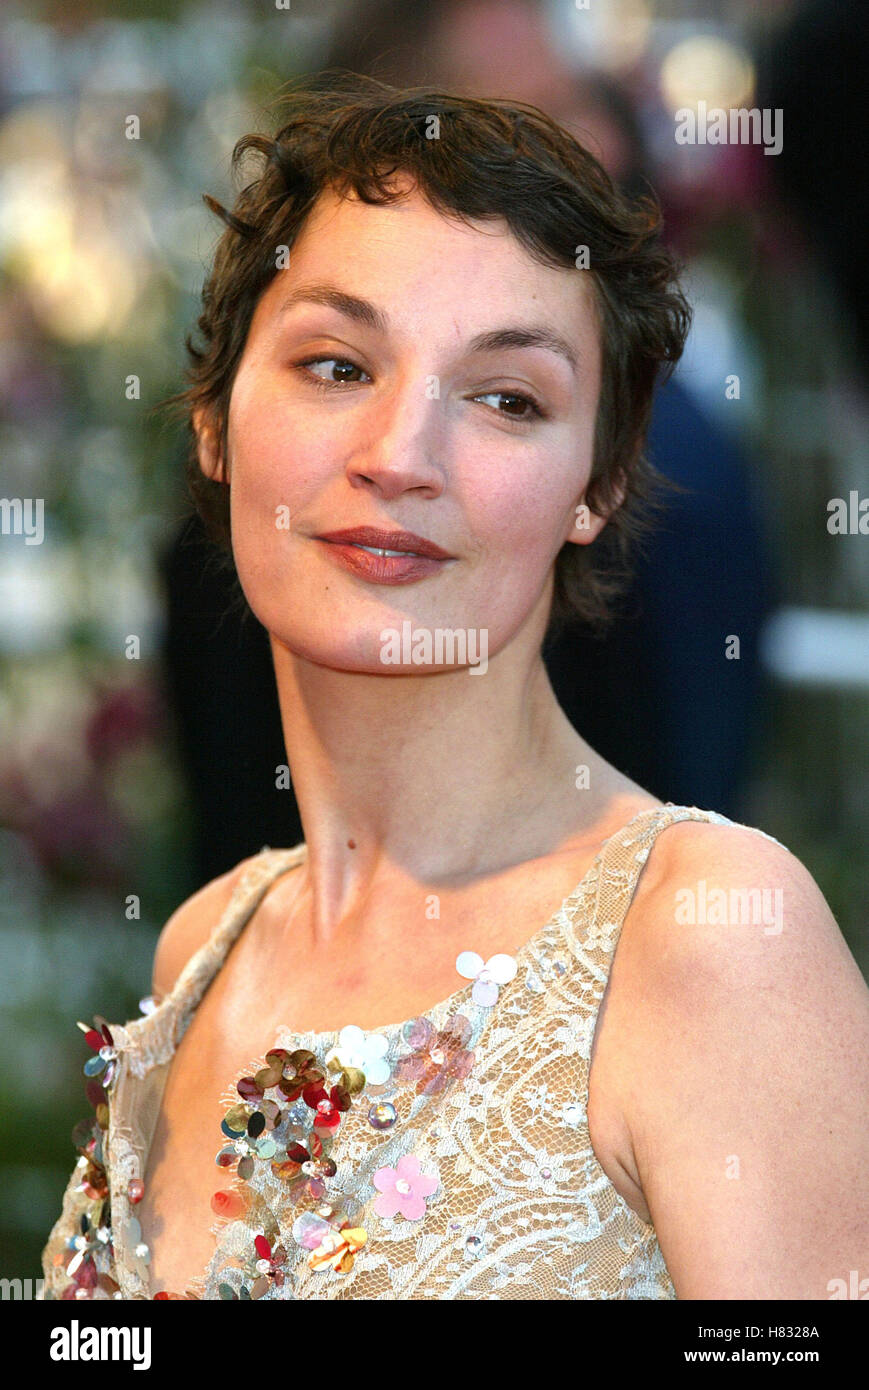 JEANNE BALIBAR CANNES FILM FESTIVAL CANNES FILM FESTIVAL CANNES FRANCE 16  May 2002